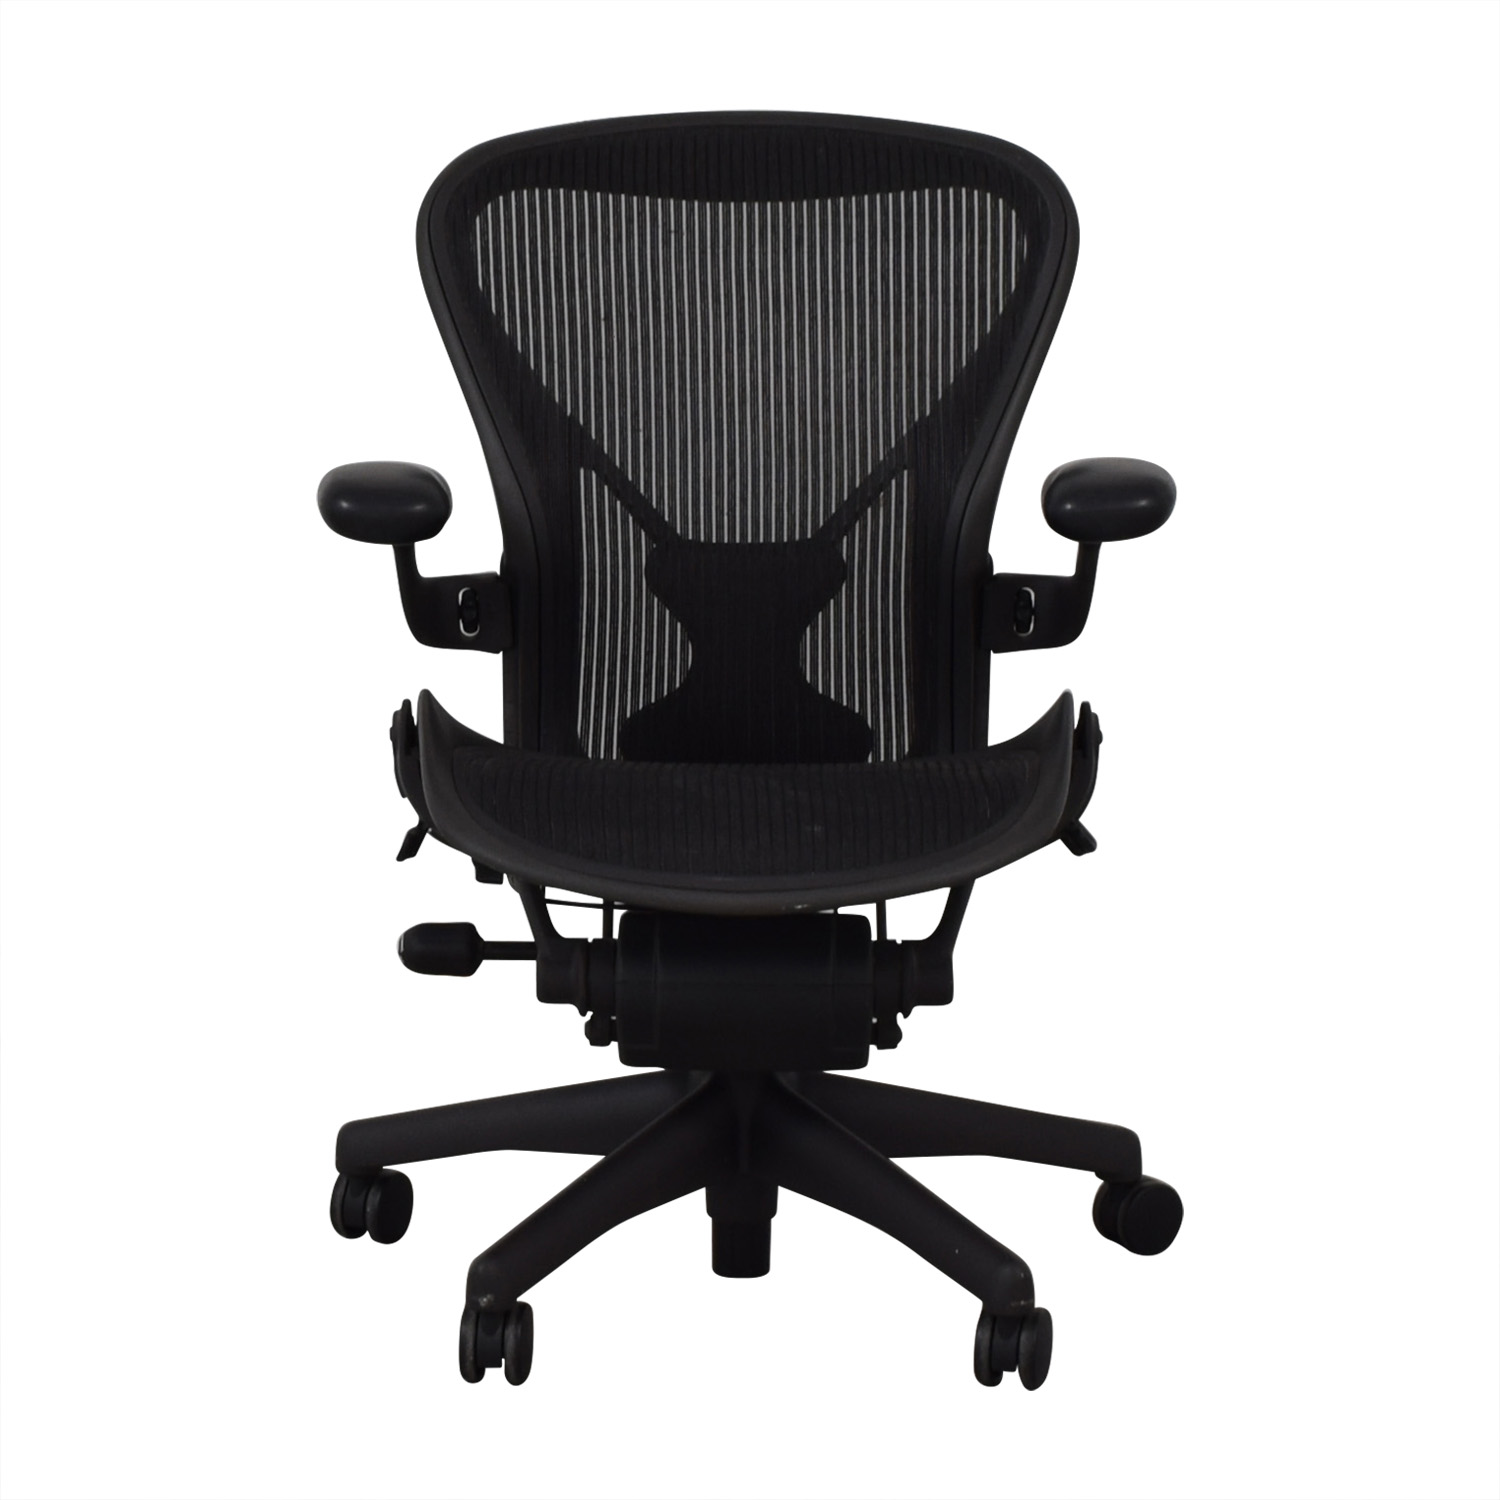 Herman Miller Herman Miller Aeron Desk Chair dimensions